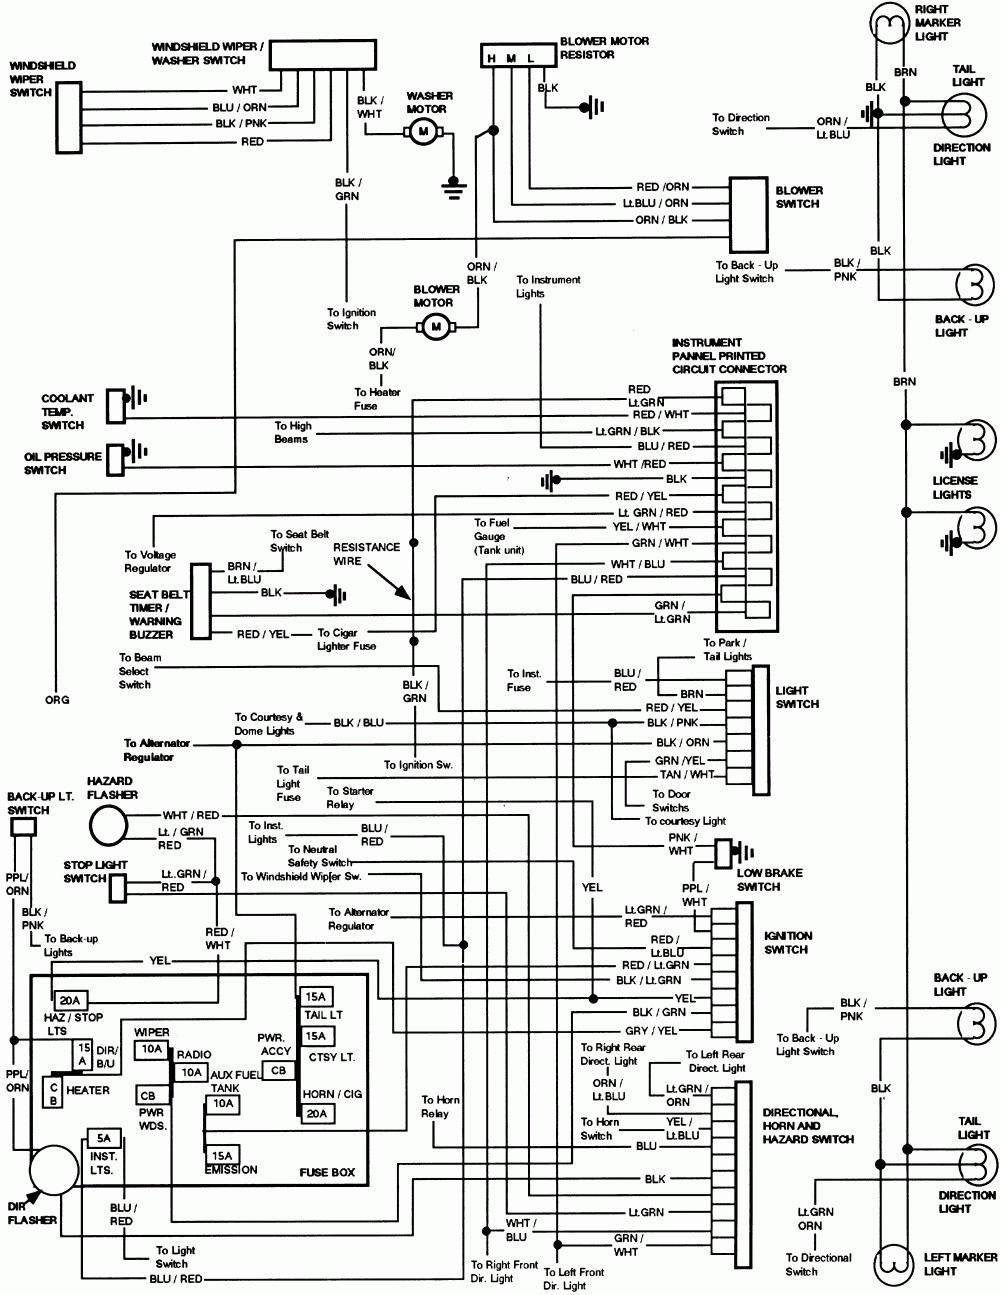 hight resolution of ford f 350 wiring wiring diagram1983 ford f 350 wiring harness free download wiring diagram loadford